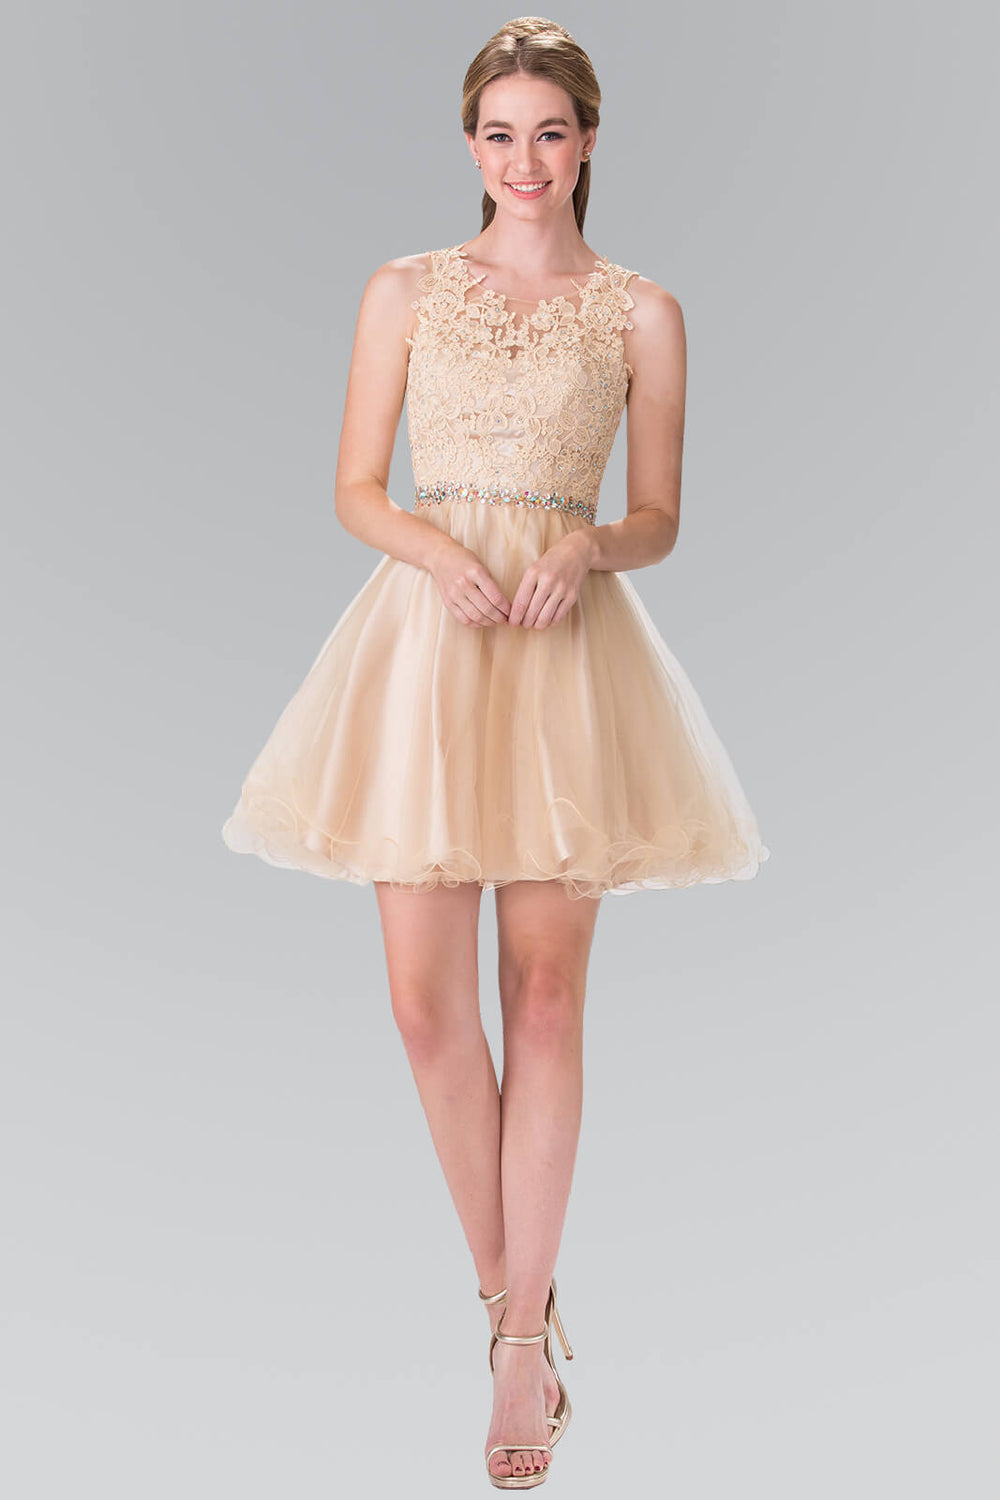 Sleeveless Prom Short Dress Homecoming - The Dress Outlet Champagne